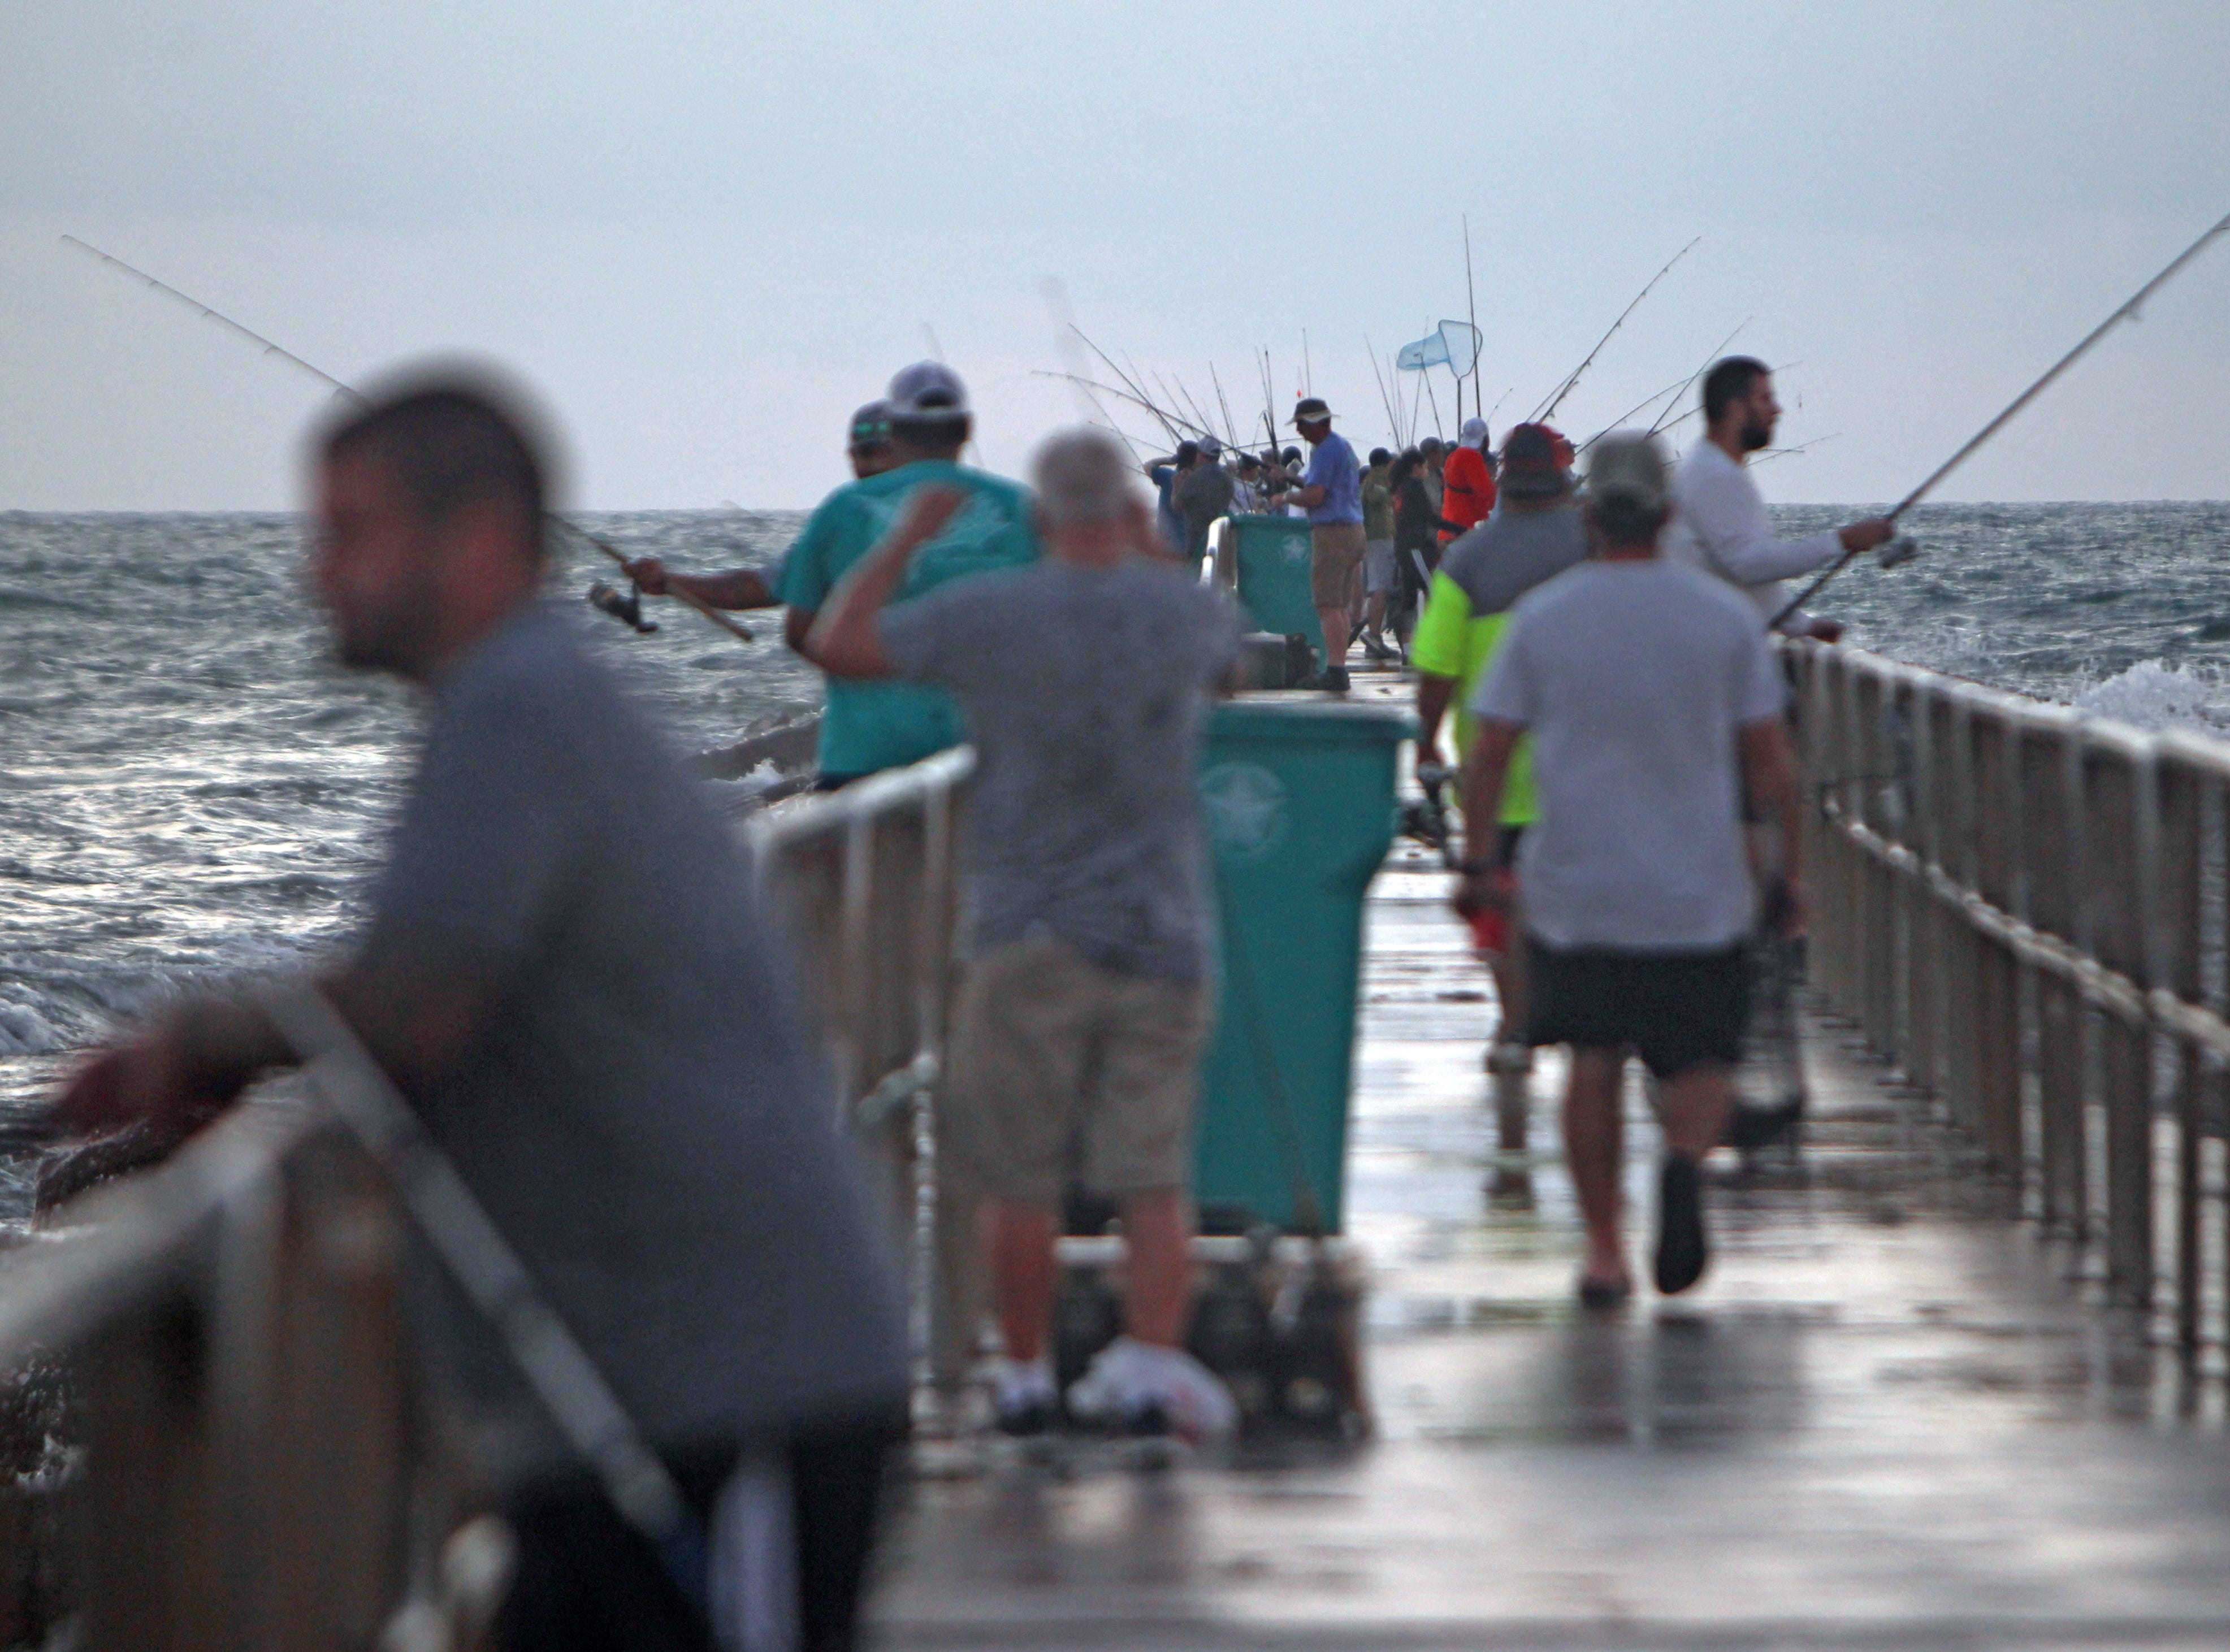 When the jetty's end is this crowded, it's best to fish elsewhere.